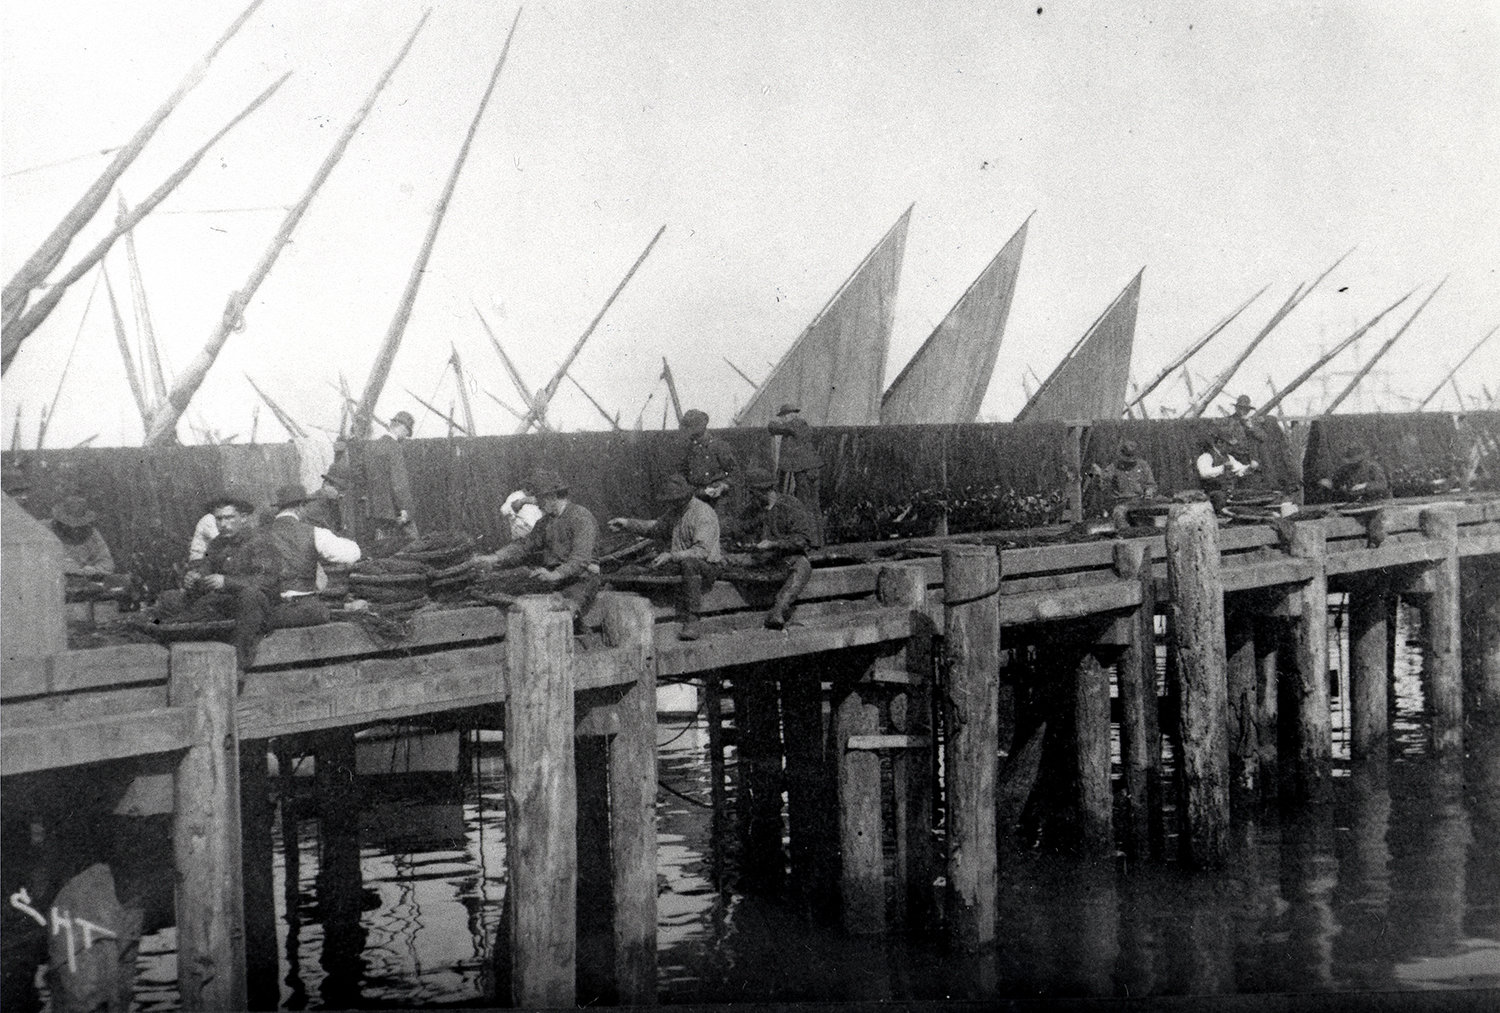 Italian Fishermen Mending Nets on a Wharf in San Francisco, California Harbor, Department of Commerce and Labor. Bureau of Fisheries. 1891, NARA Online Public Access, In Copyright